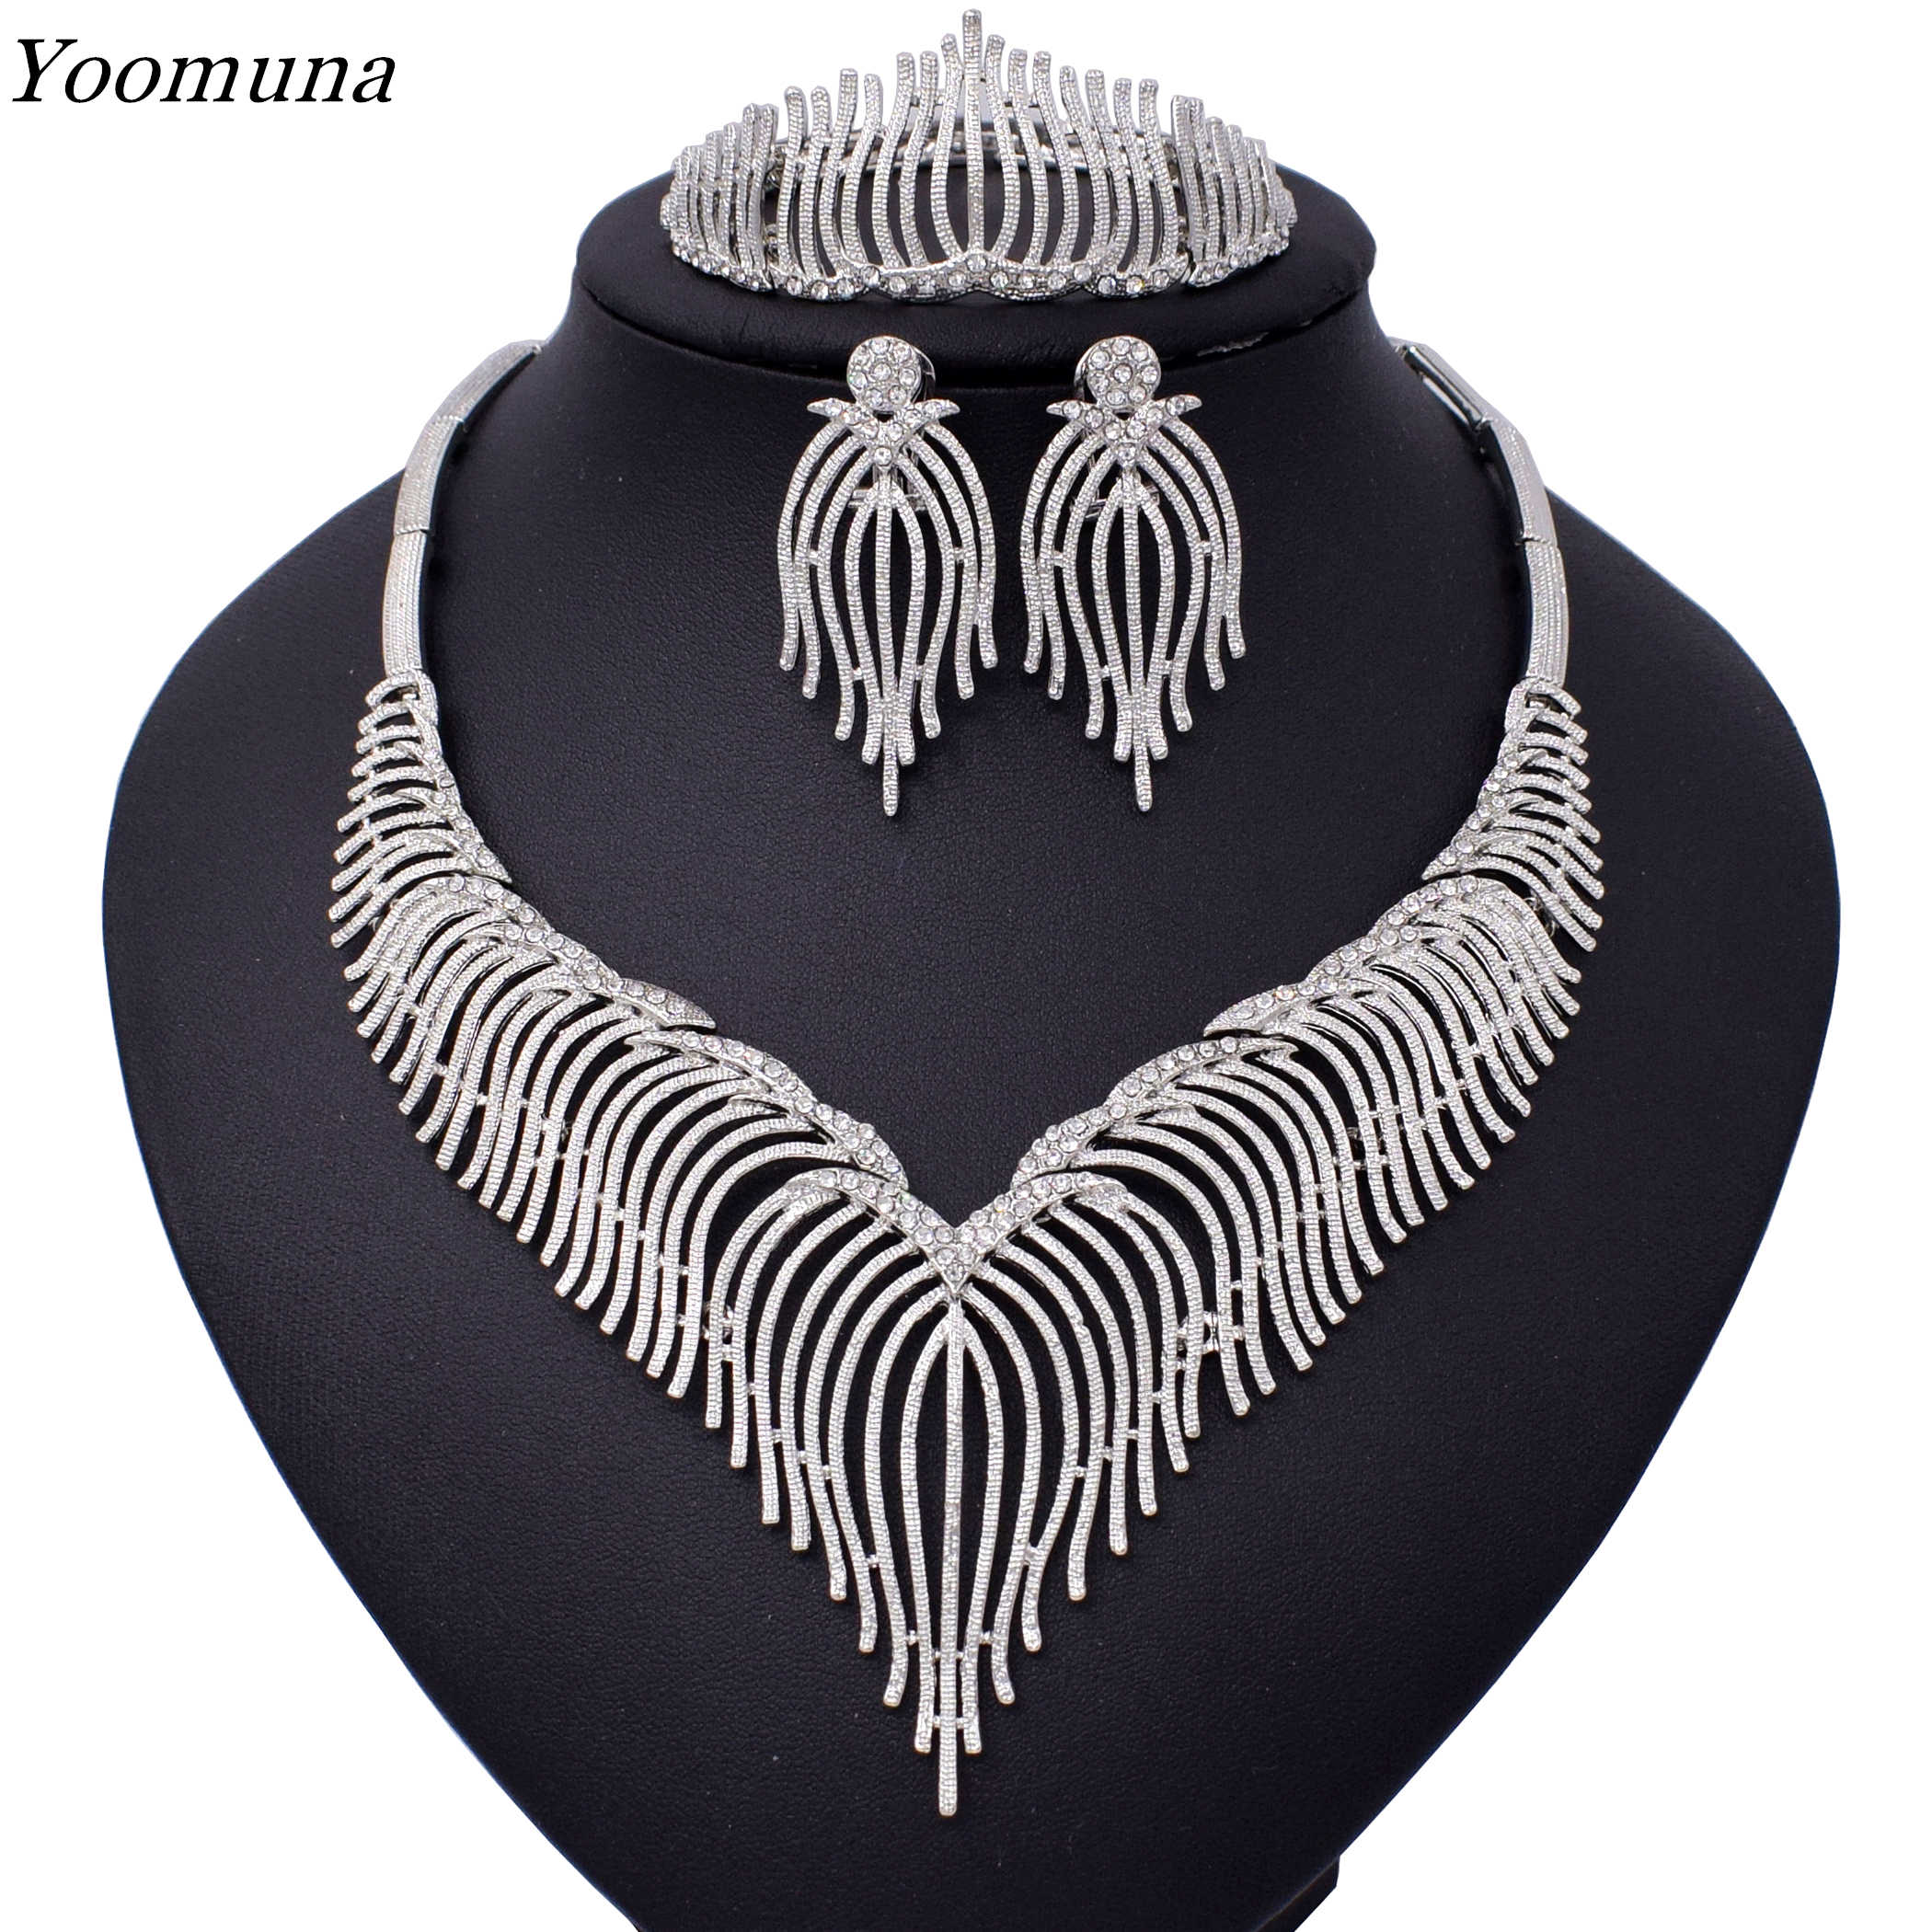 Luxury silver Jewelry sets For Women Wedding Cubic Zirconia Flower African Beads Jewelry Sets Indian bridal jewelry set 2019